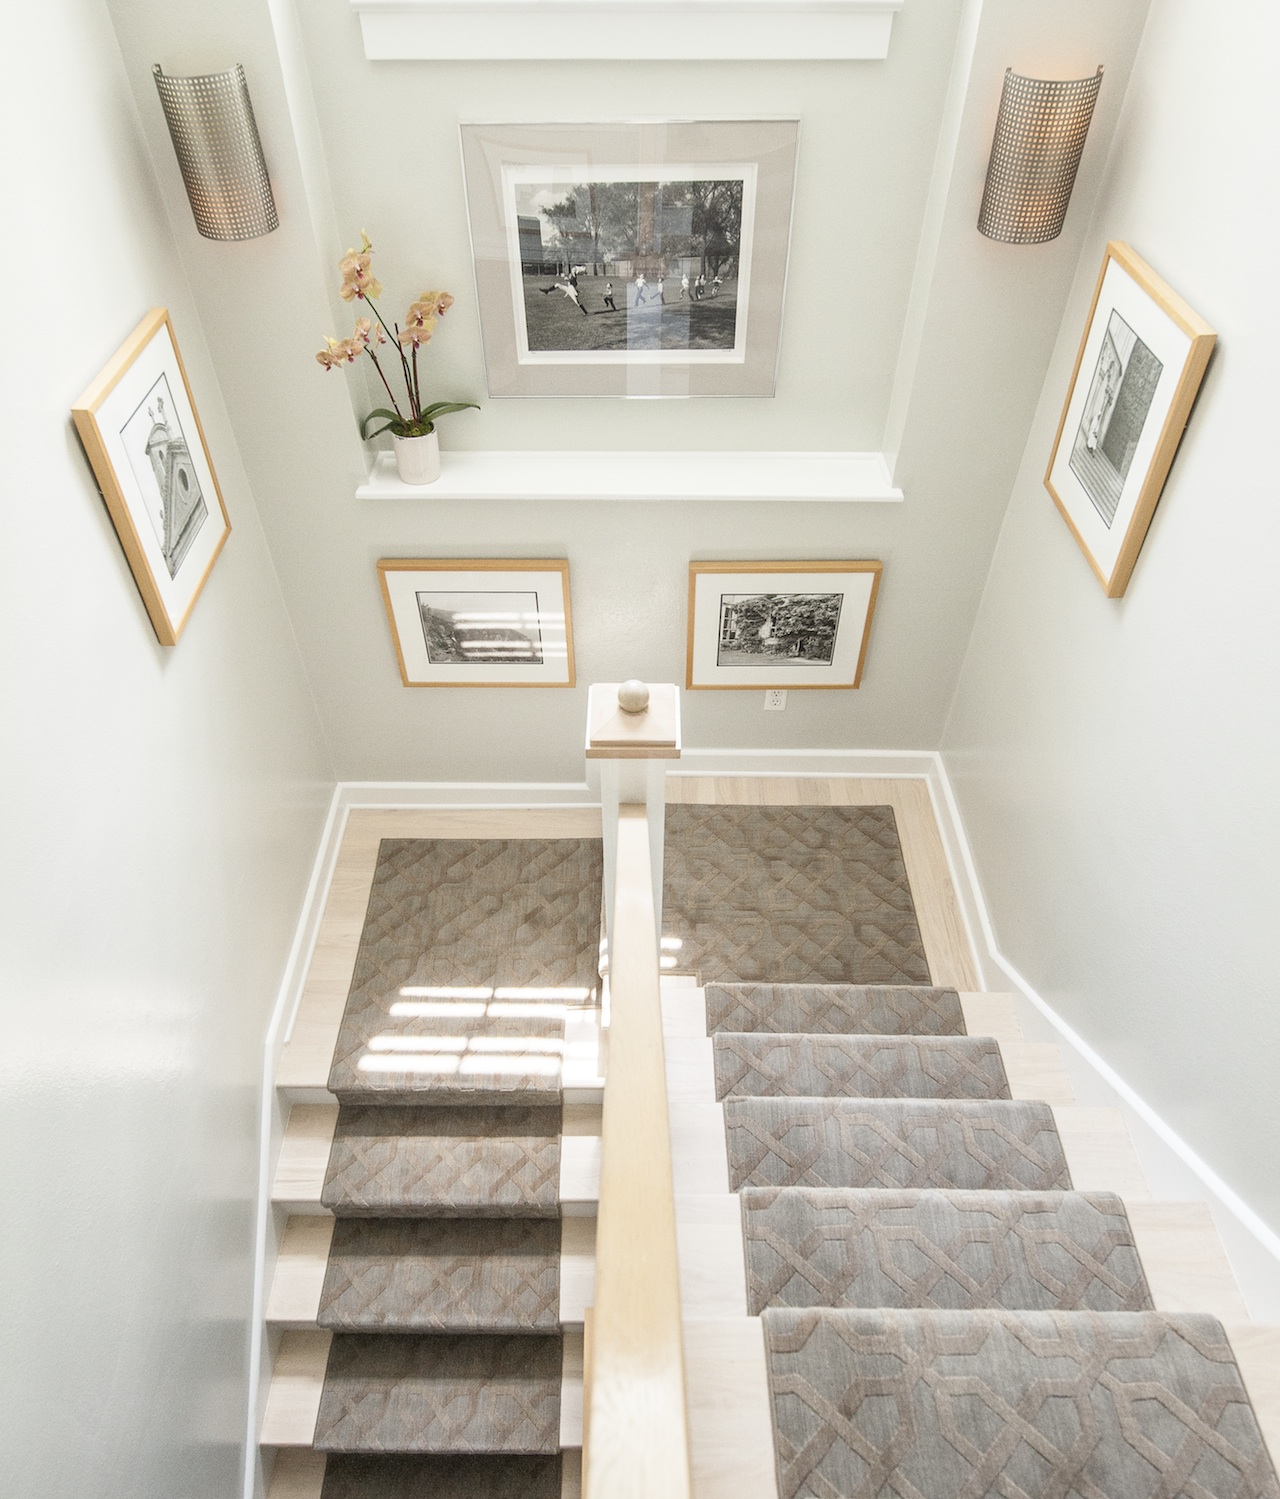 Basement Stair Landing Decorating: Nourison: Wool Stair Runner On A Staircase